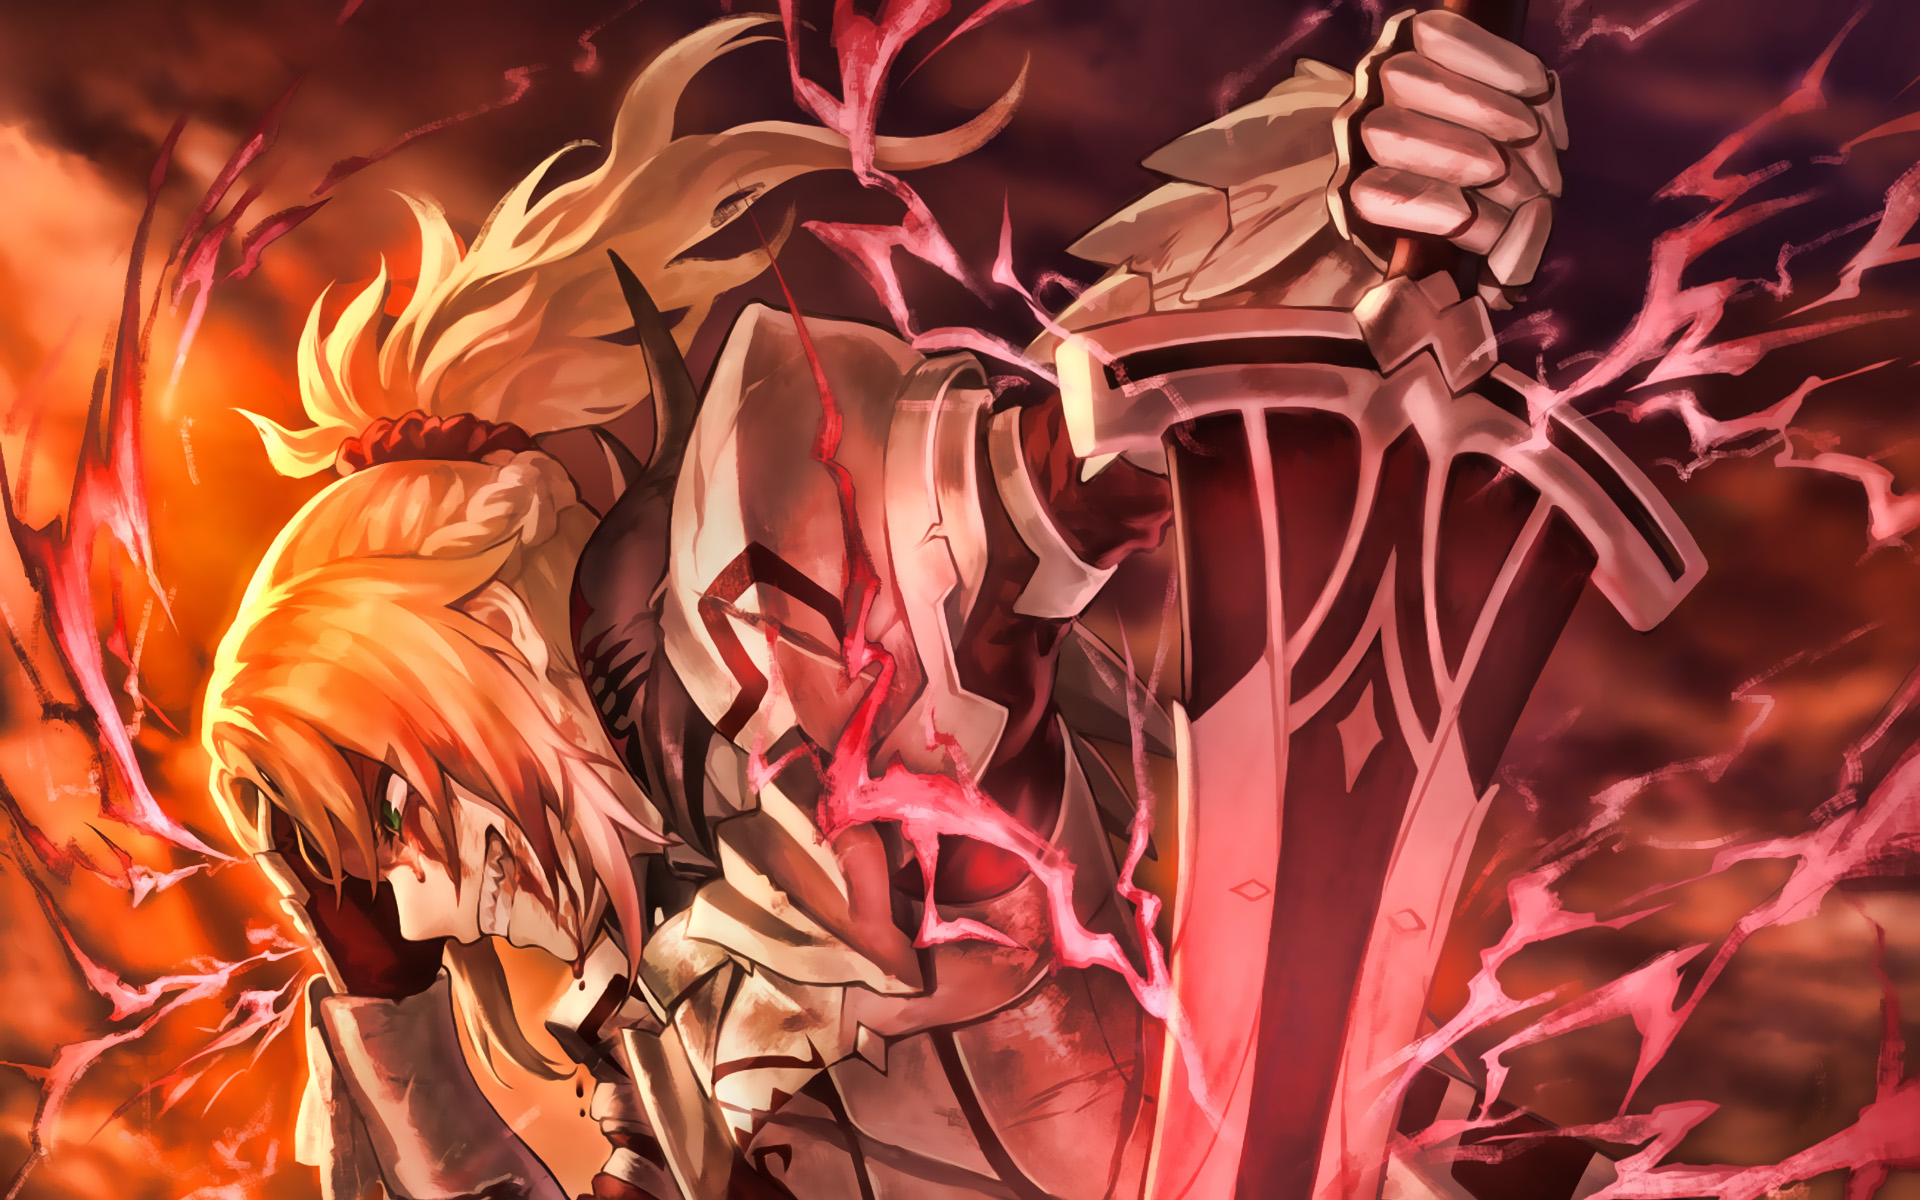 Fate Apocrypha Anime Fondo De Pantalla Full Hd Id3989